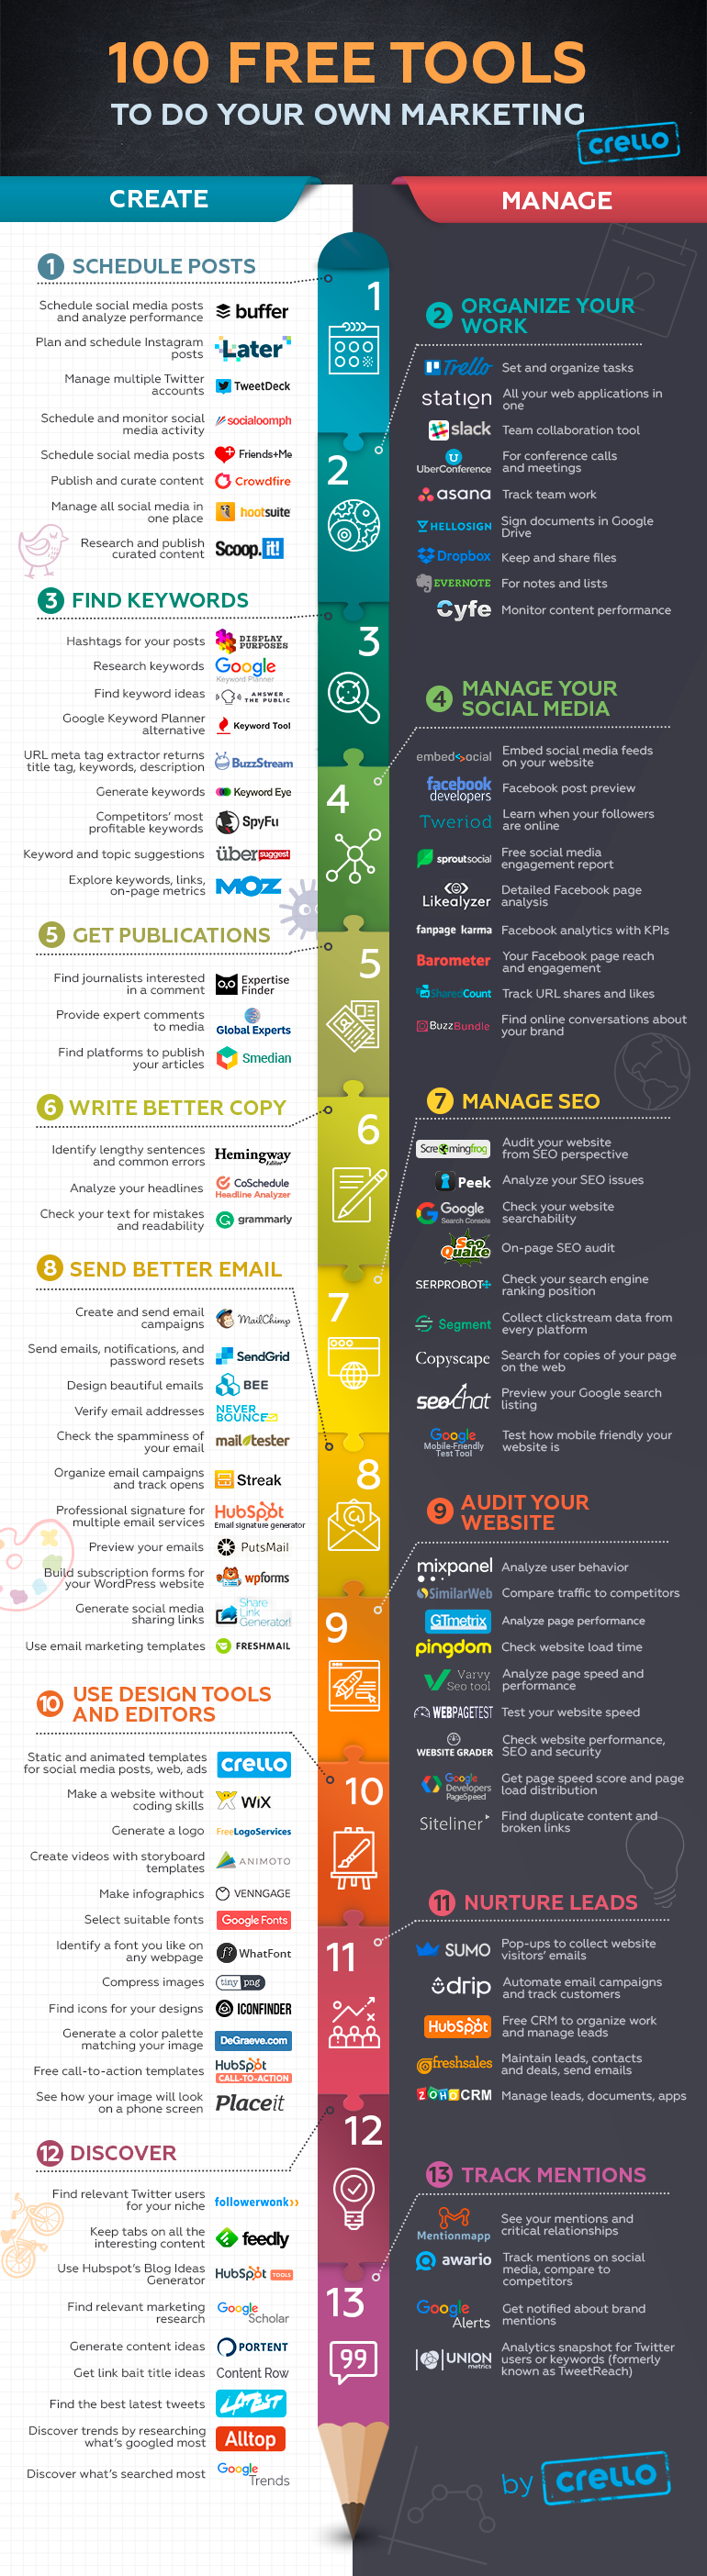 100 of the Best Free Marketing Tools for Your Business - infographic